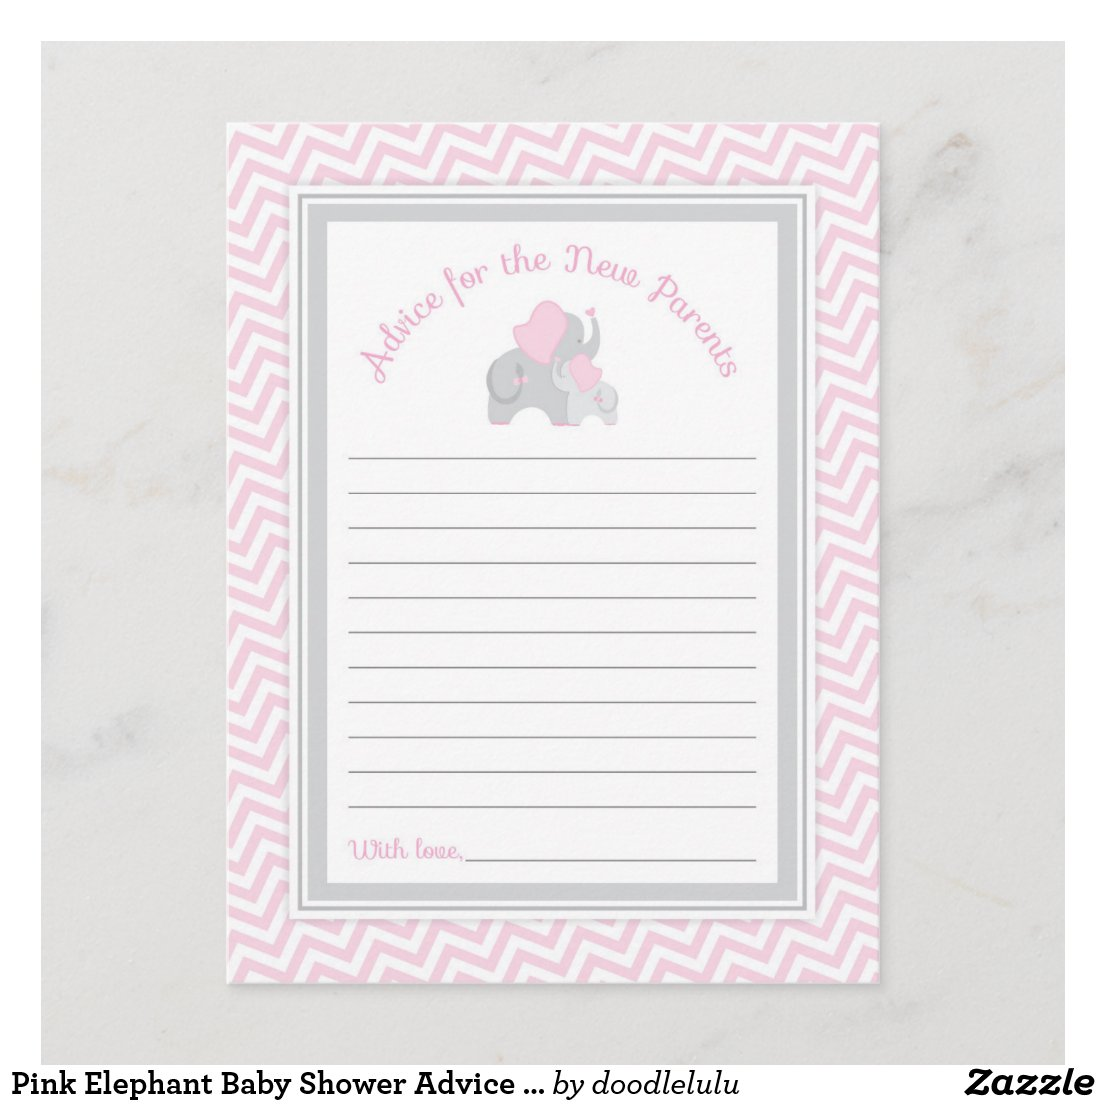 Pink Elephant Baby Shower Advice for New Parents